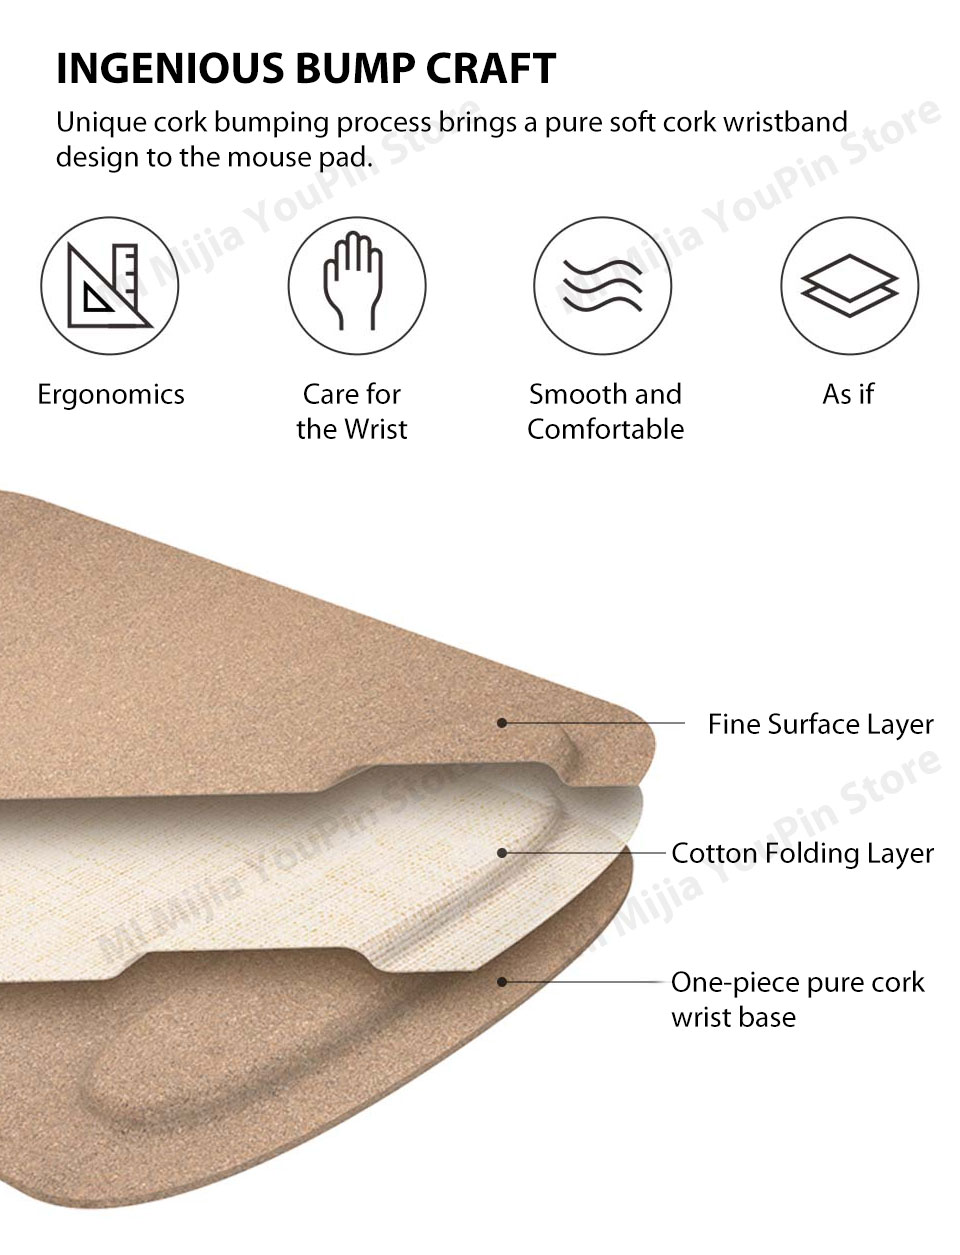 Xiaomi Youpin Mouse Pad Waterproof Skin Friendly Oak Coating Ergonomic Mouse Mat With Wrist Rest For Wired Wireless Gaming Mouse (6)